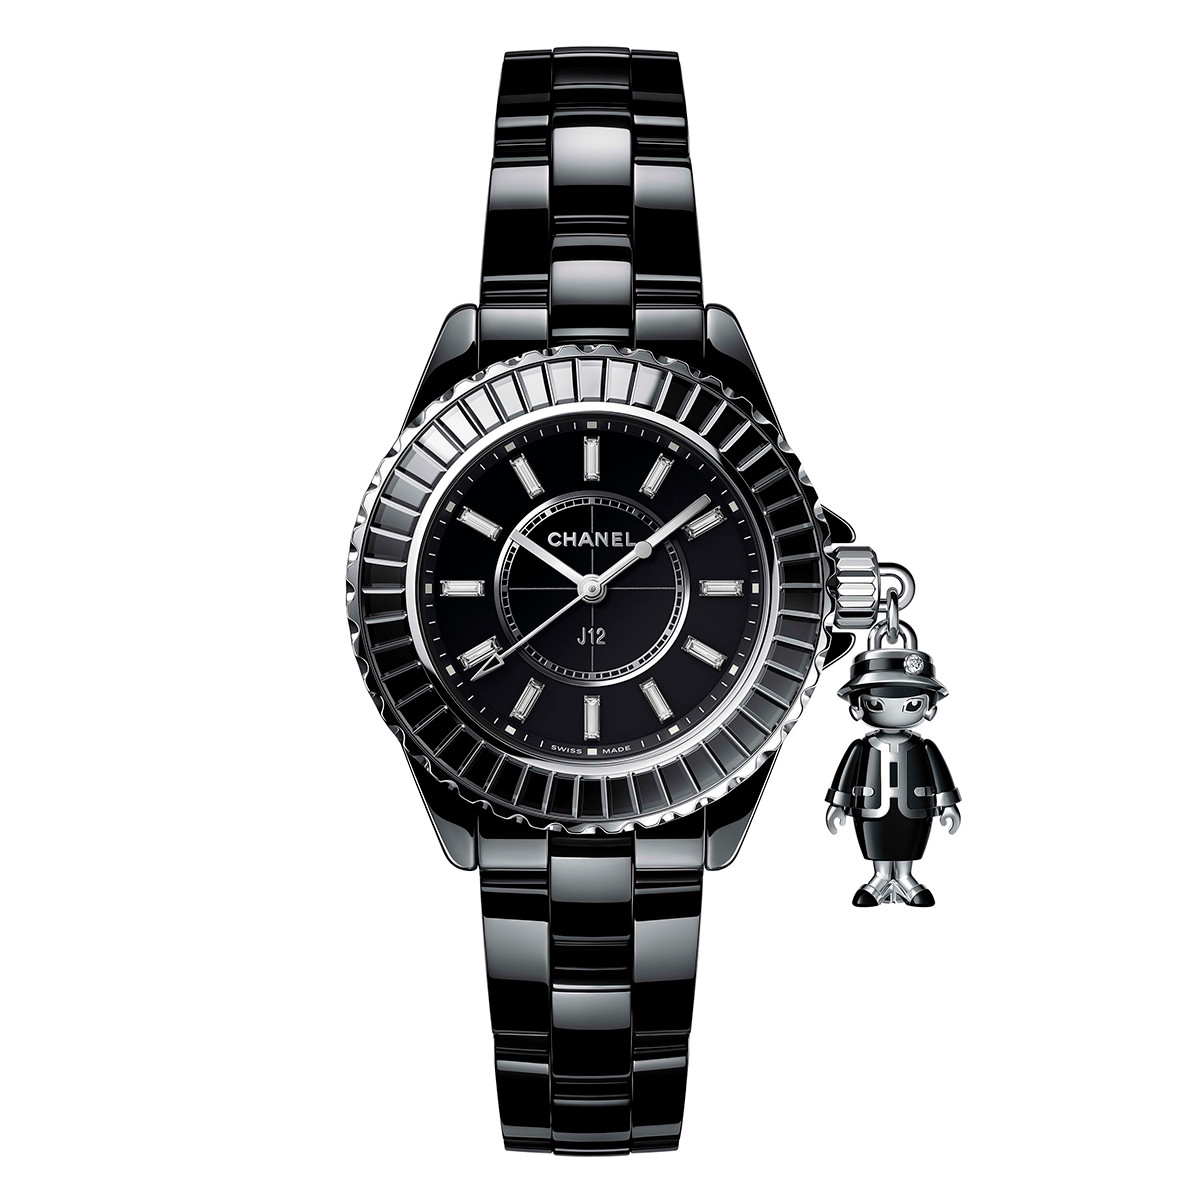 Mademoiselle J12 Acte II 33mm Black Ceramic (H6479)